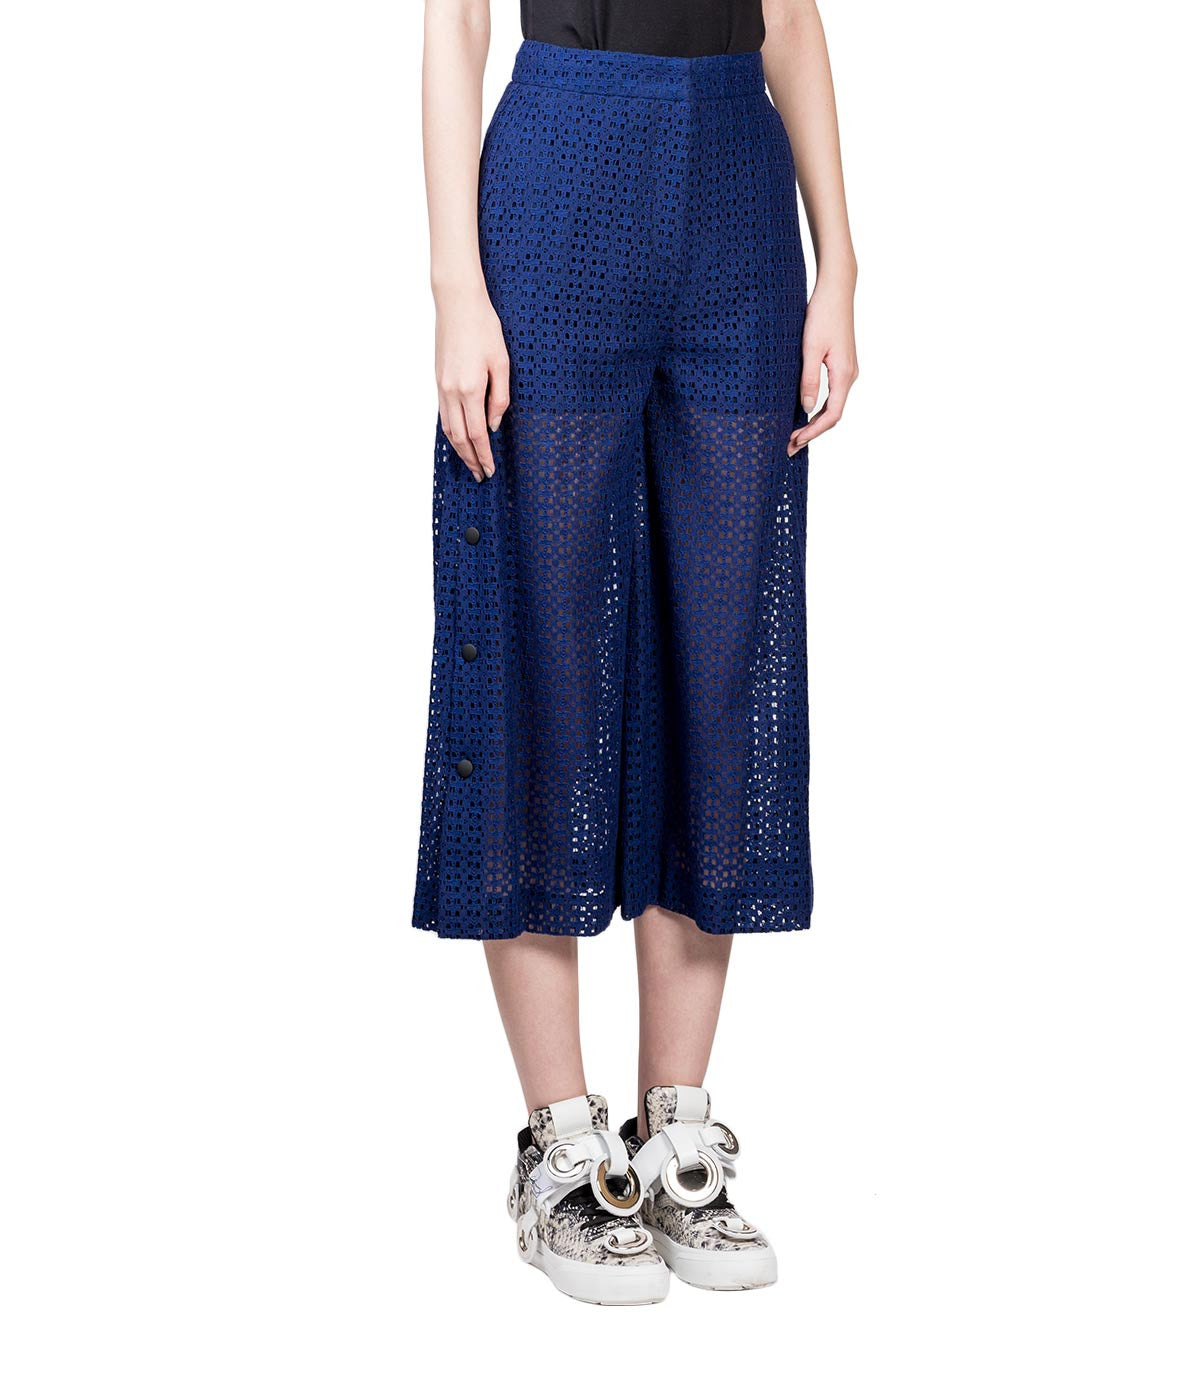 Lace Culottes with Snaps